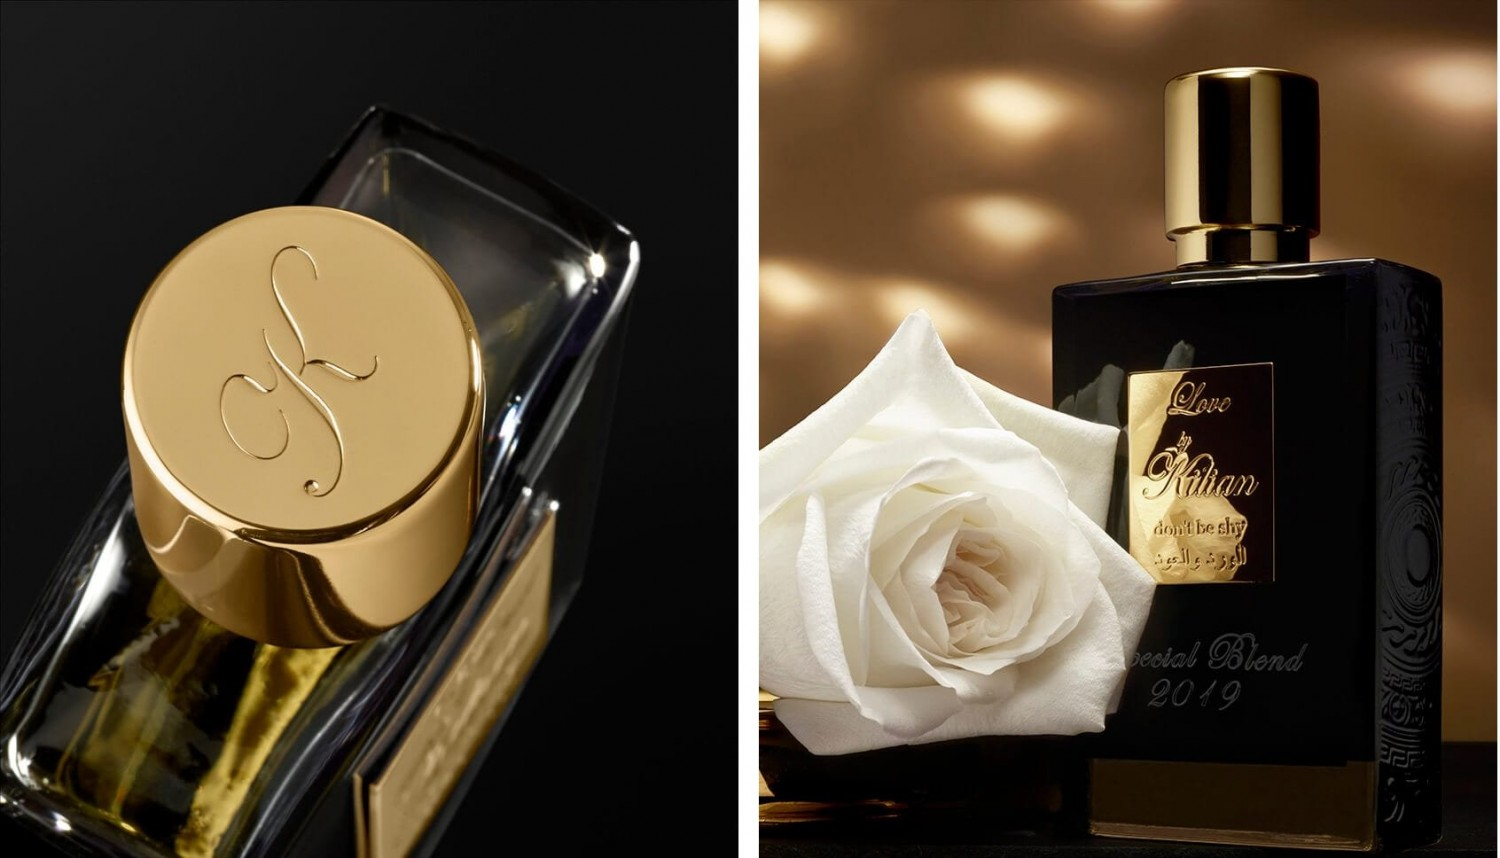 Love By Kilian Don't Be Shy Rose and Oud Perfume